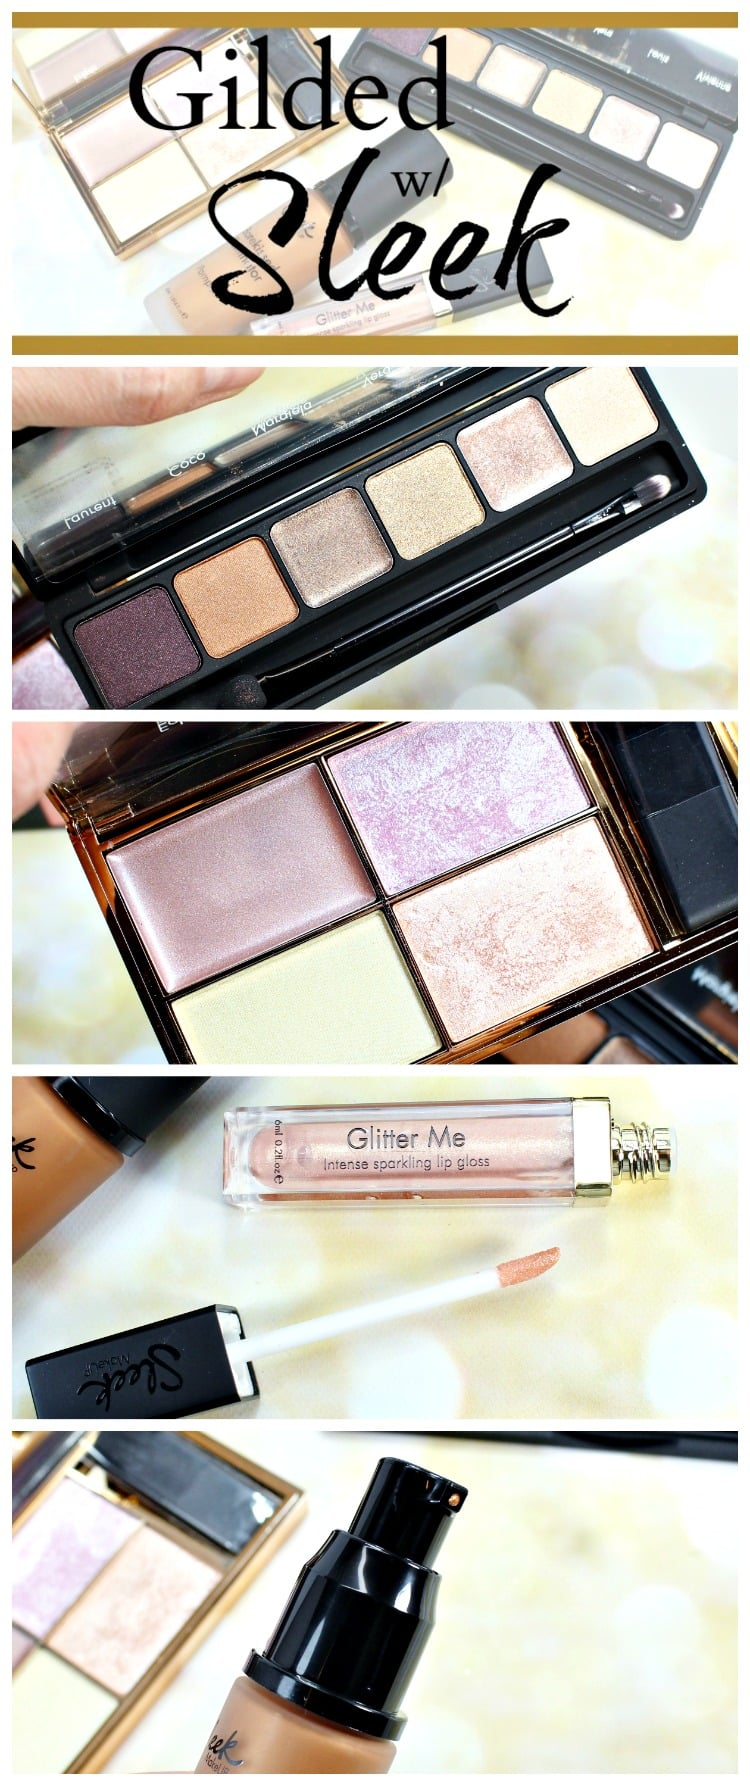 gilded with sleek swatches review